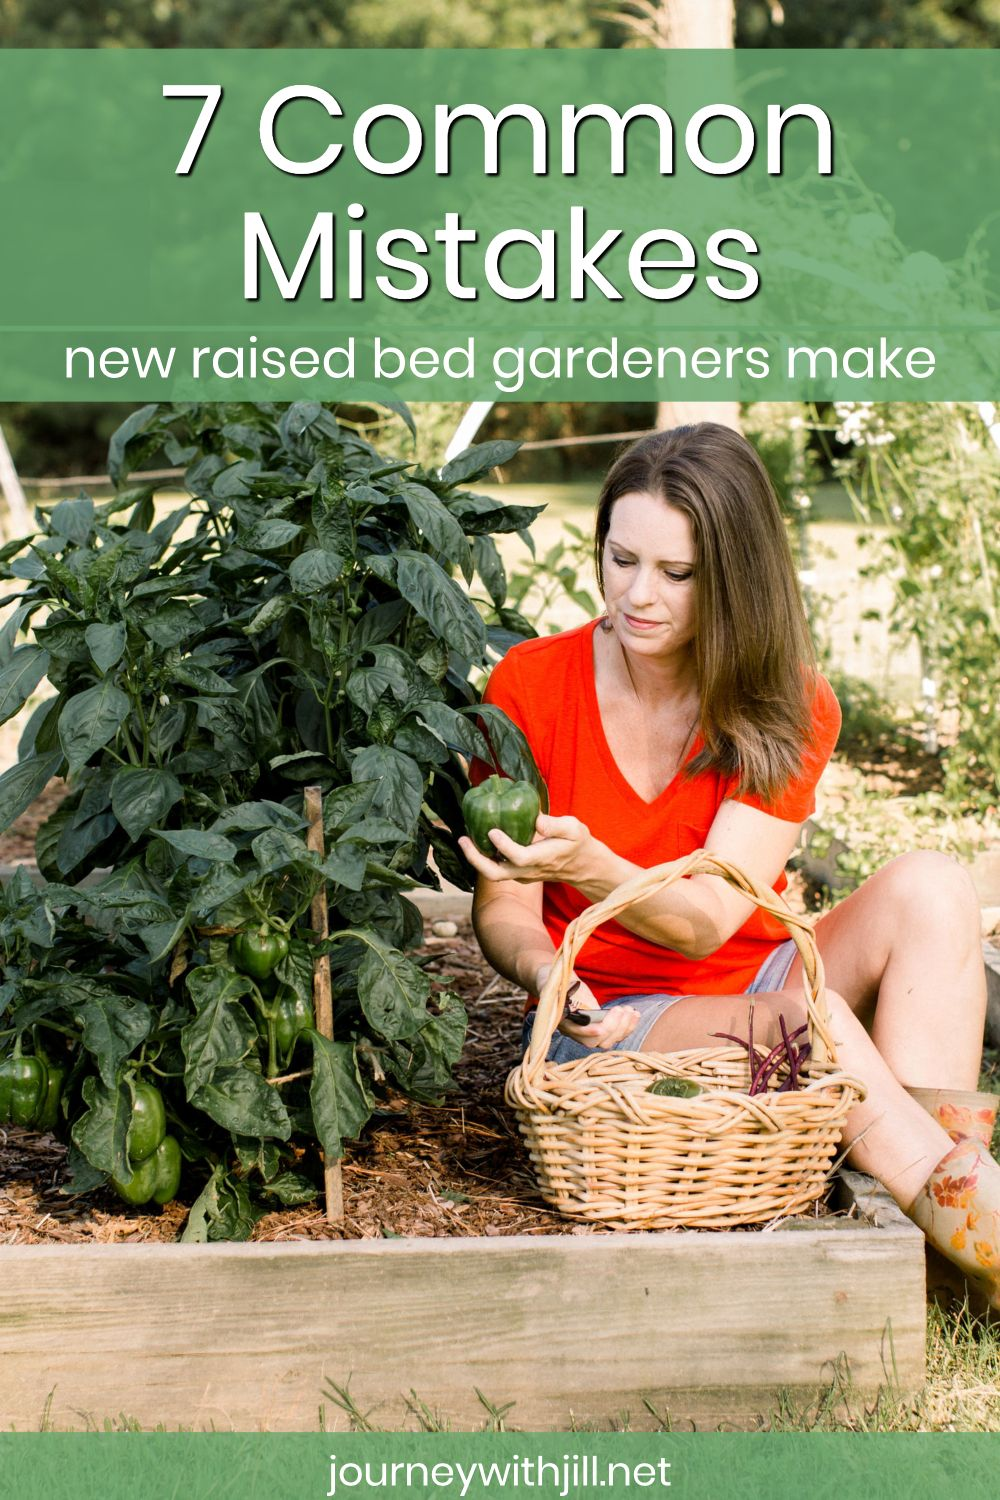 7 Common Mistakes in Raised Bed Gardening is part of Vegetable garden raised beds, Gardening for beginners, Raised beds, Organic gardening, Gardening tips, Container gardening - If you're planning a raised bed garden for the first time or adding to your existing beds, avoid these 7 mistakes common in raised bed gardening